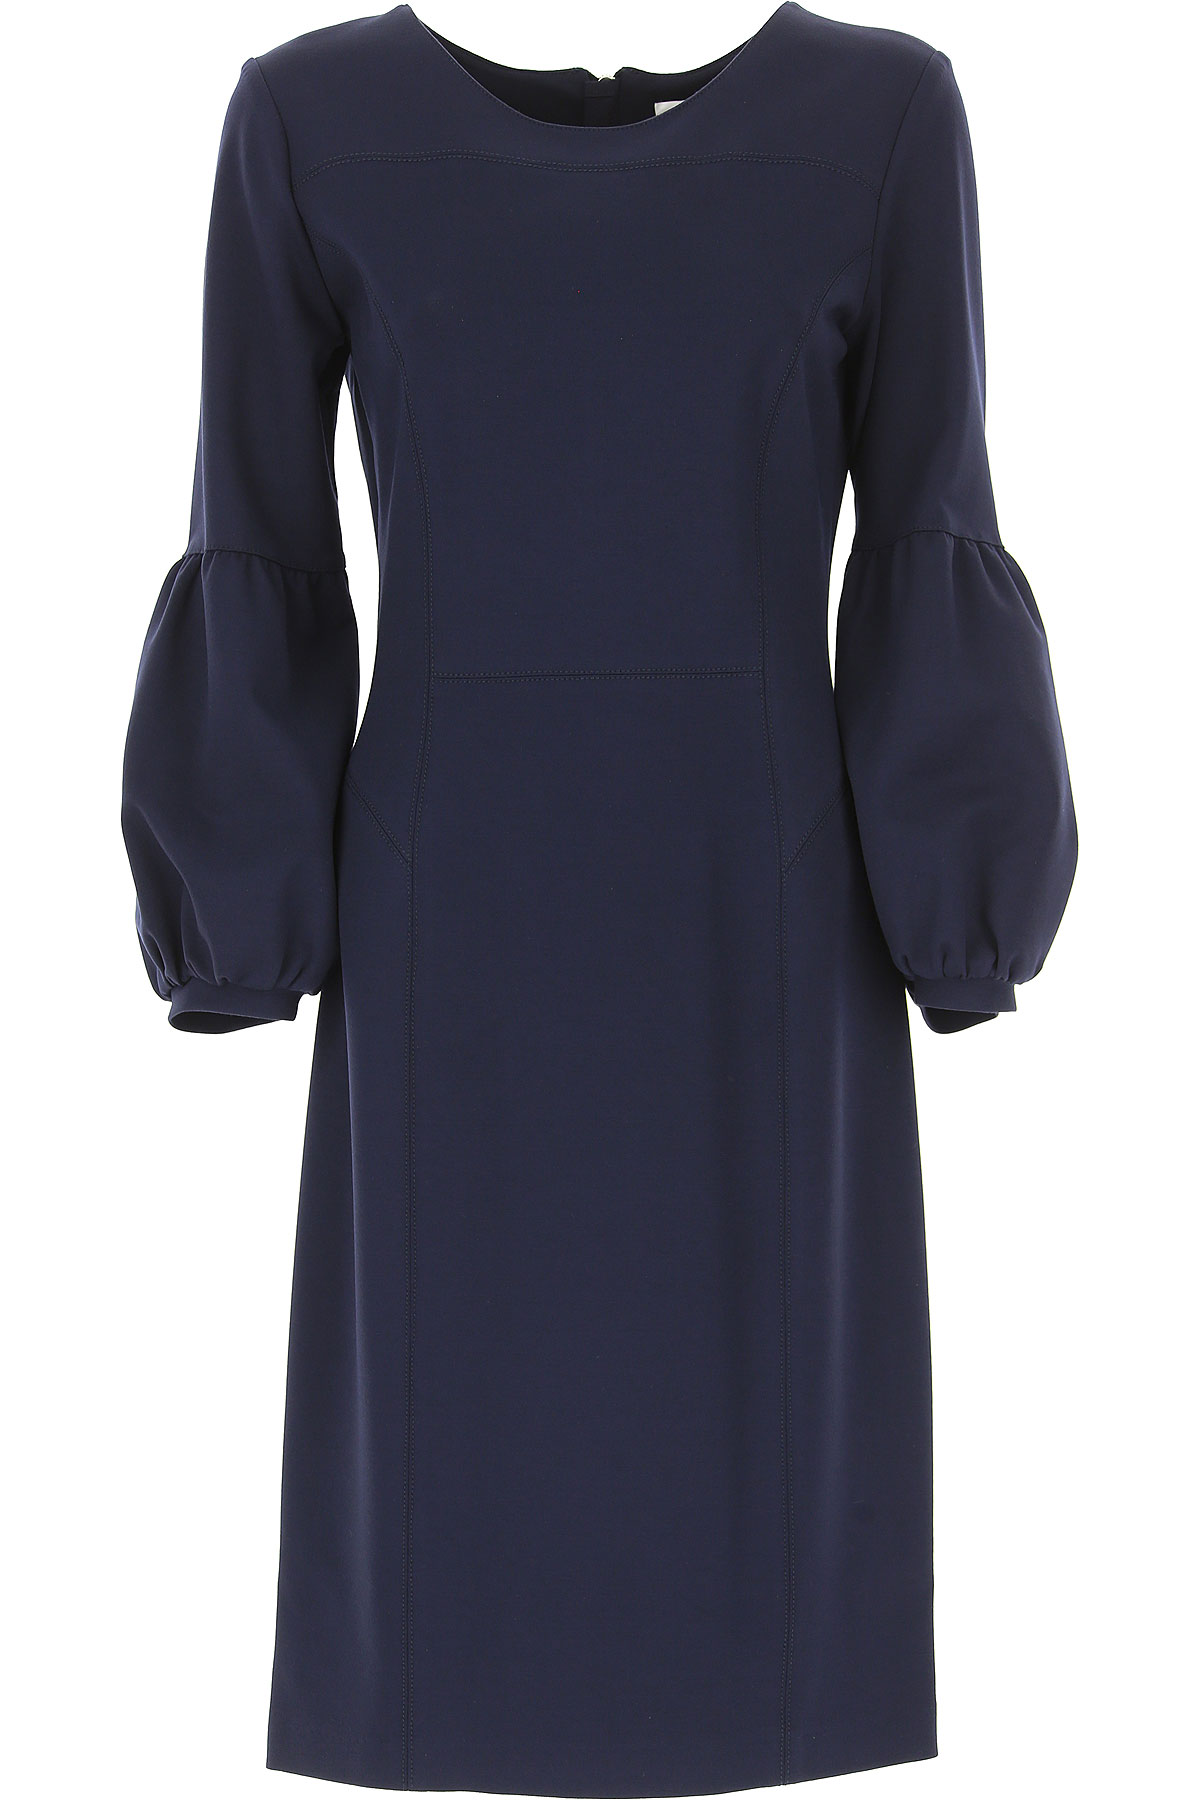 Image of Sfizio Dress for Women, Evening Cocktail Party, Midnight Blue, polyester, 2017, 10 12 6 8